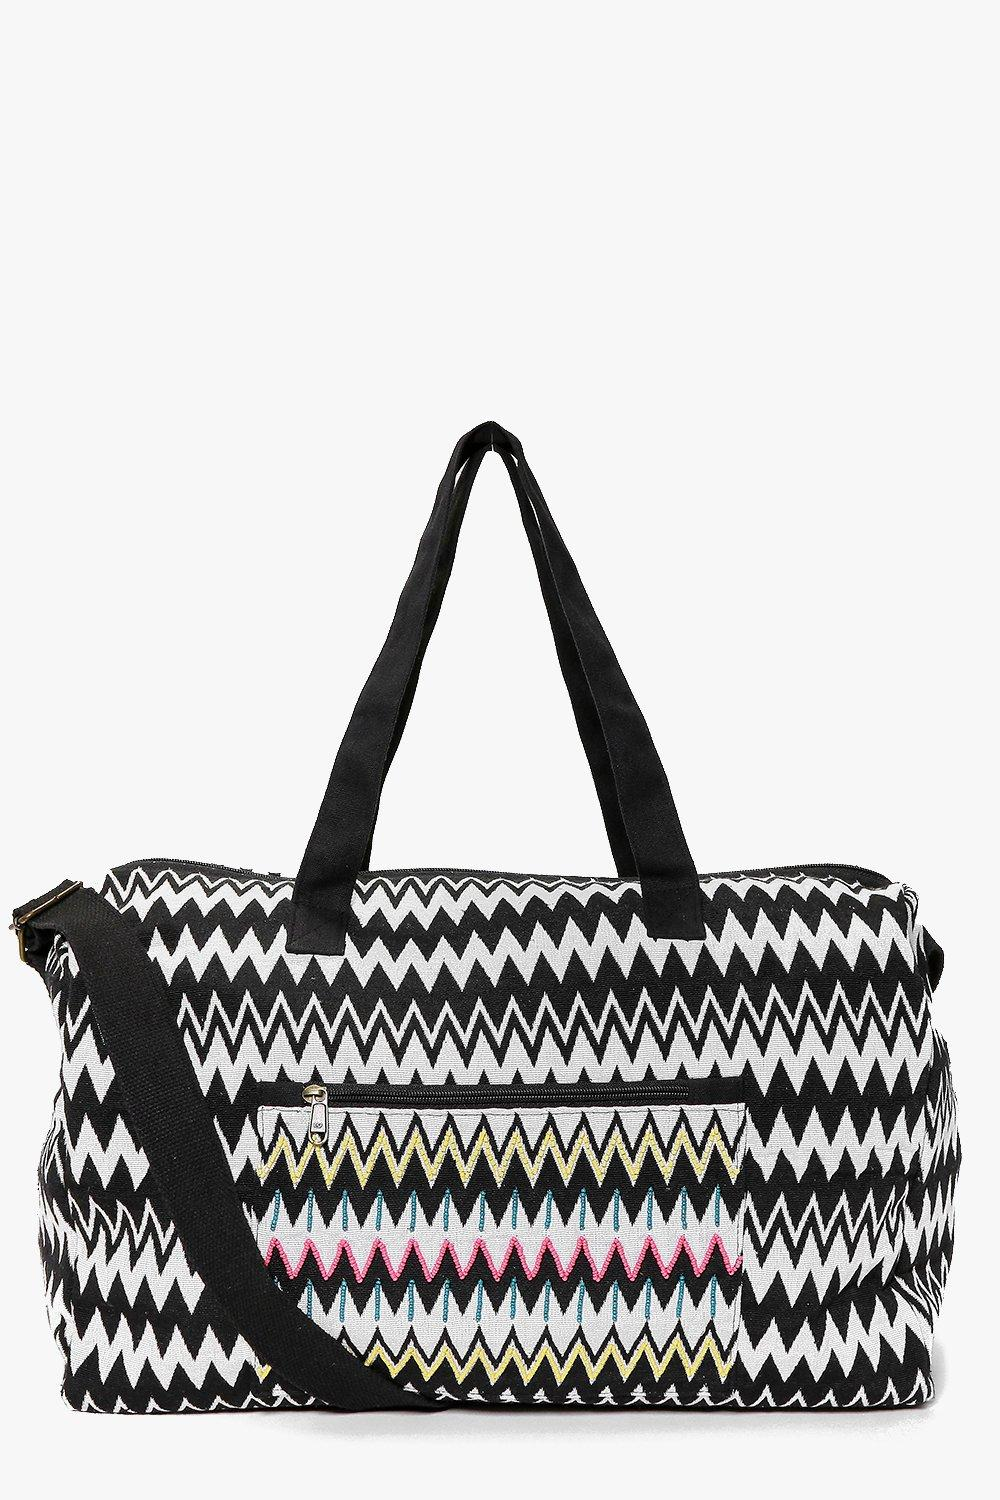 Ava Mono Zig Zag Embroidered Panel Day Bag